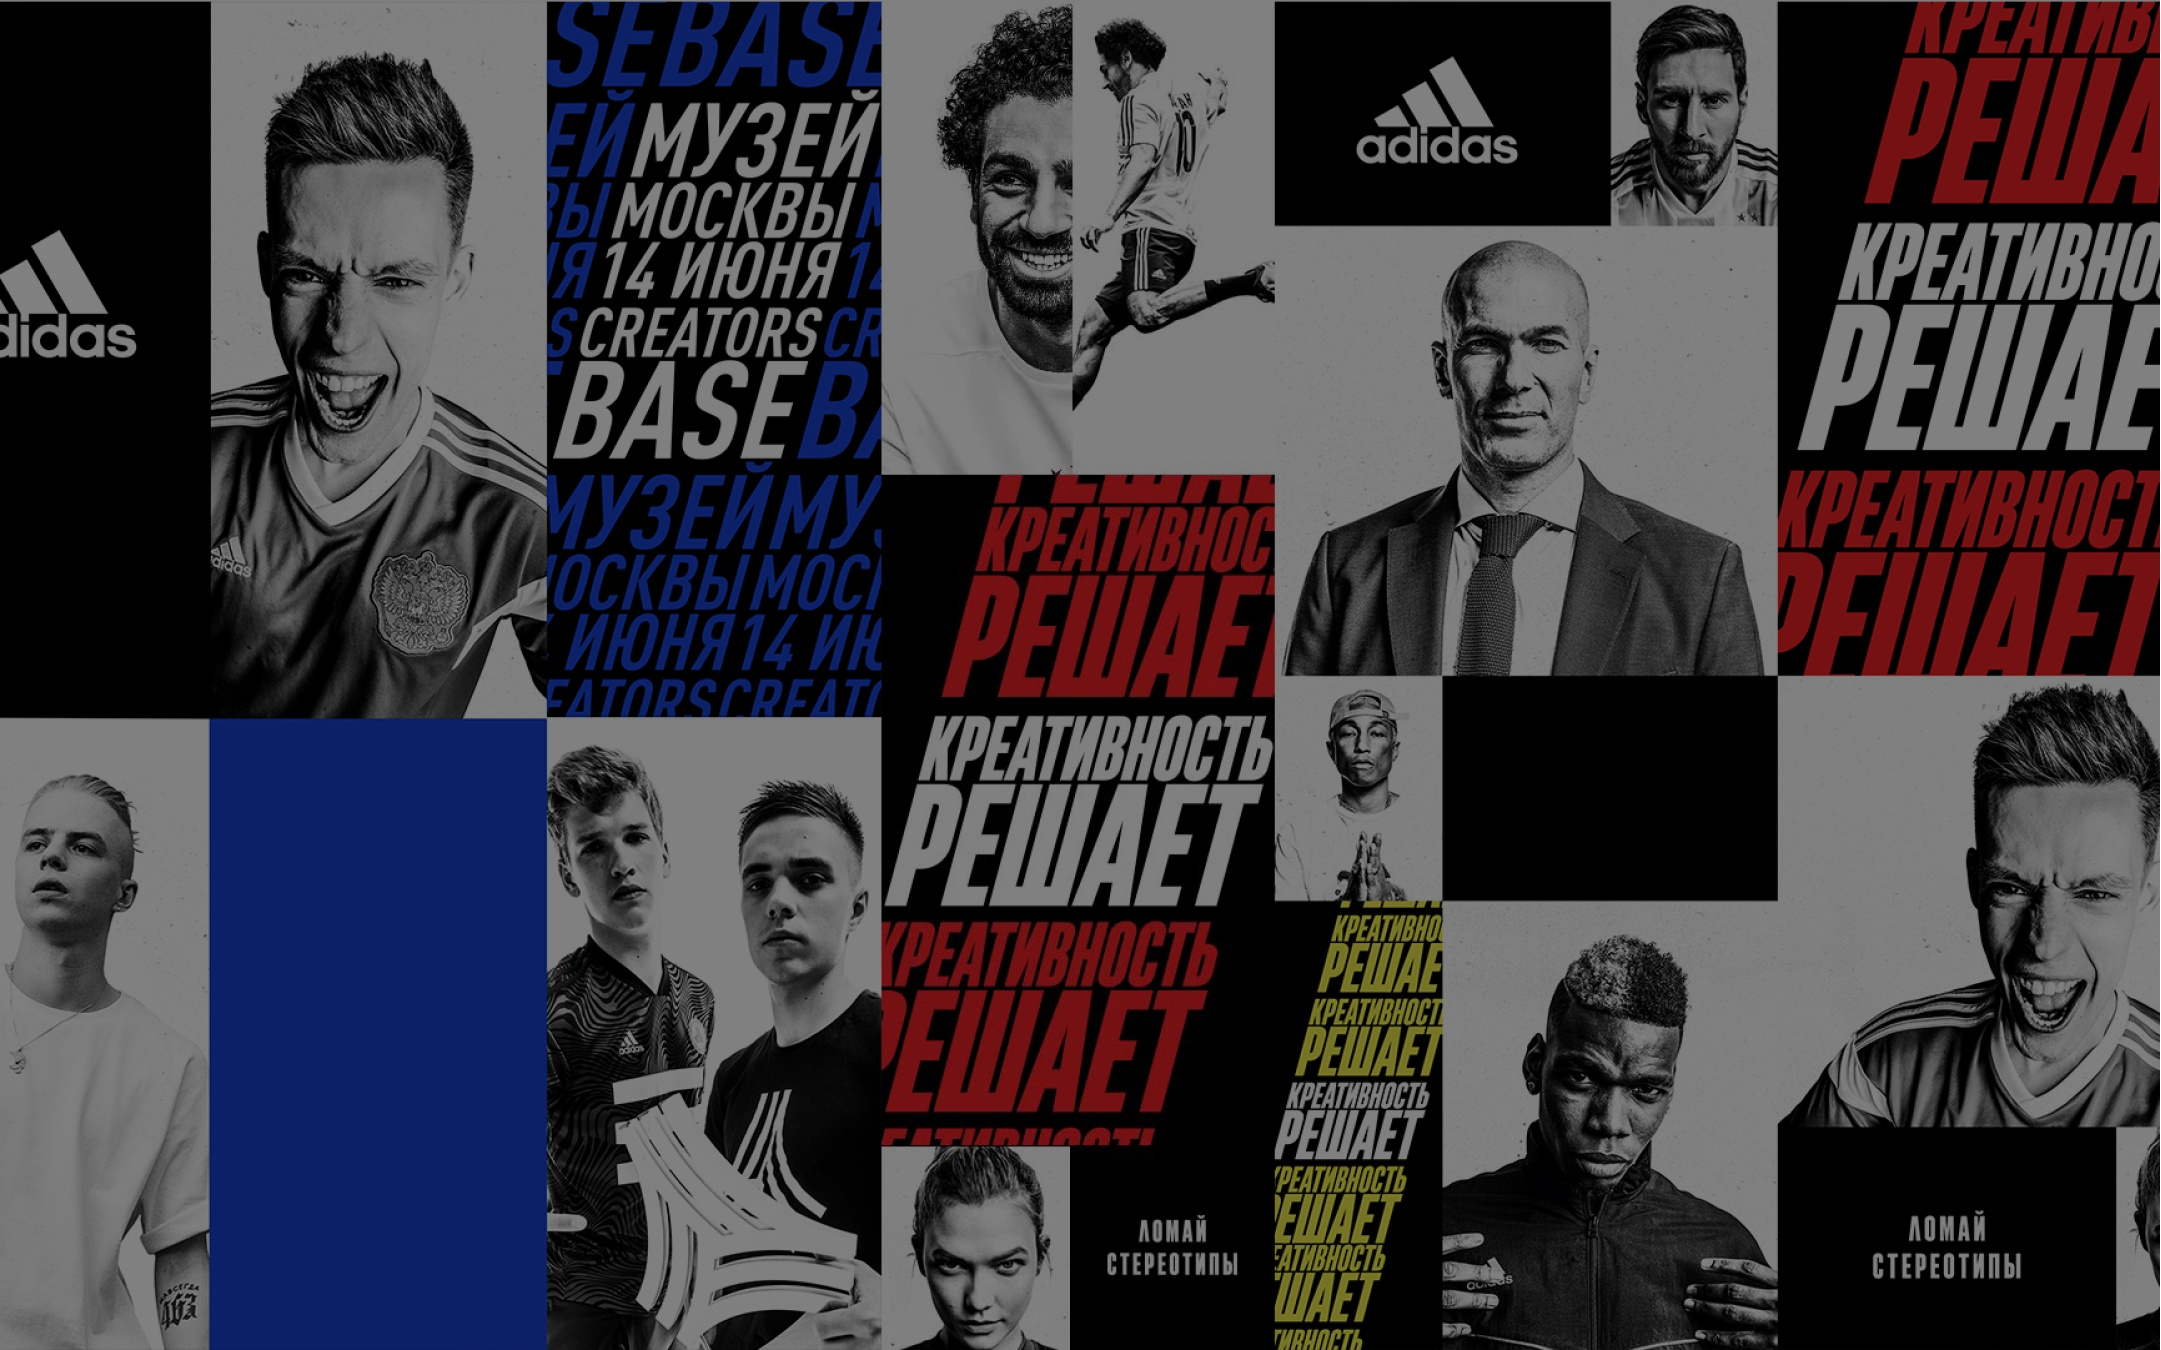 adidas Creativity is the answer